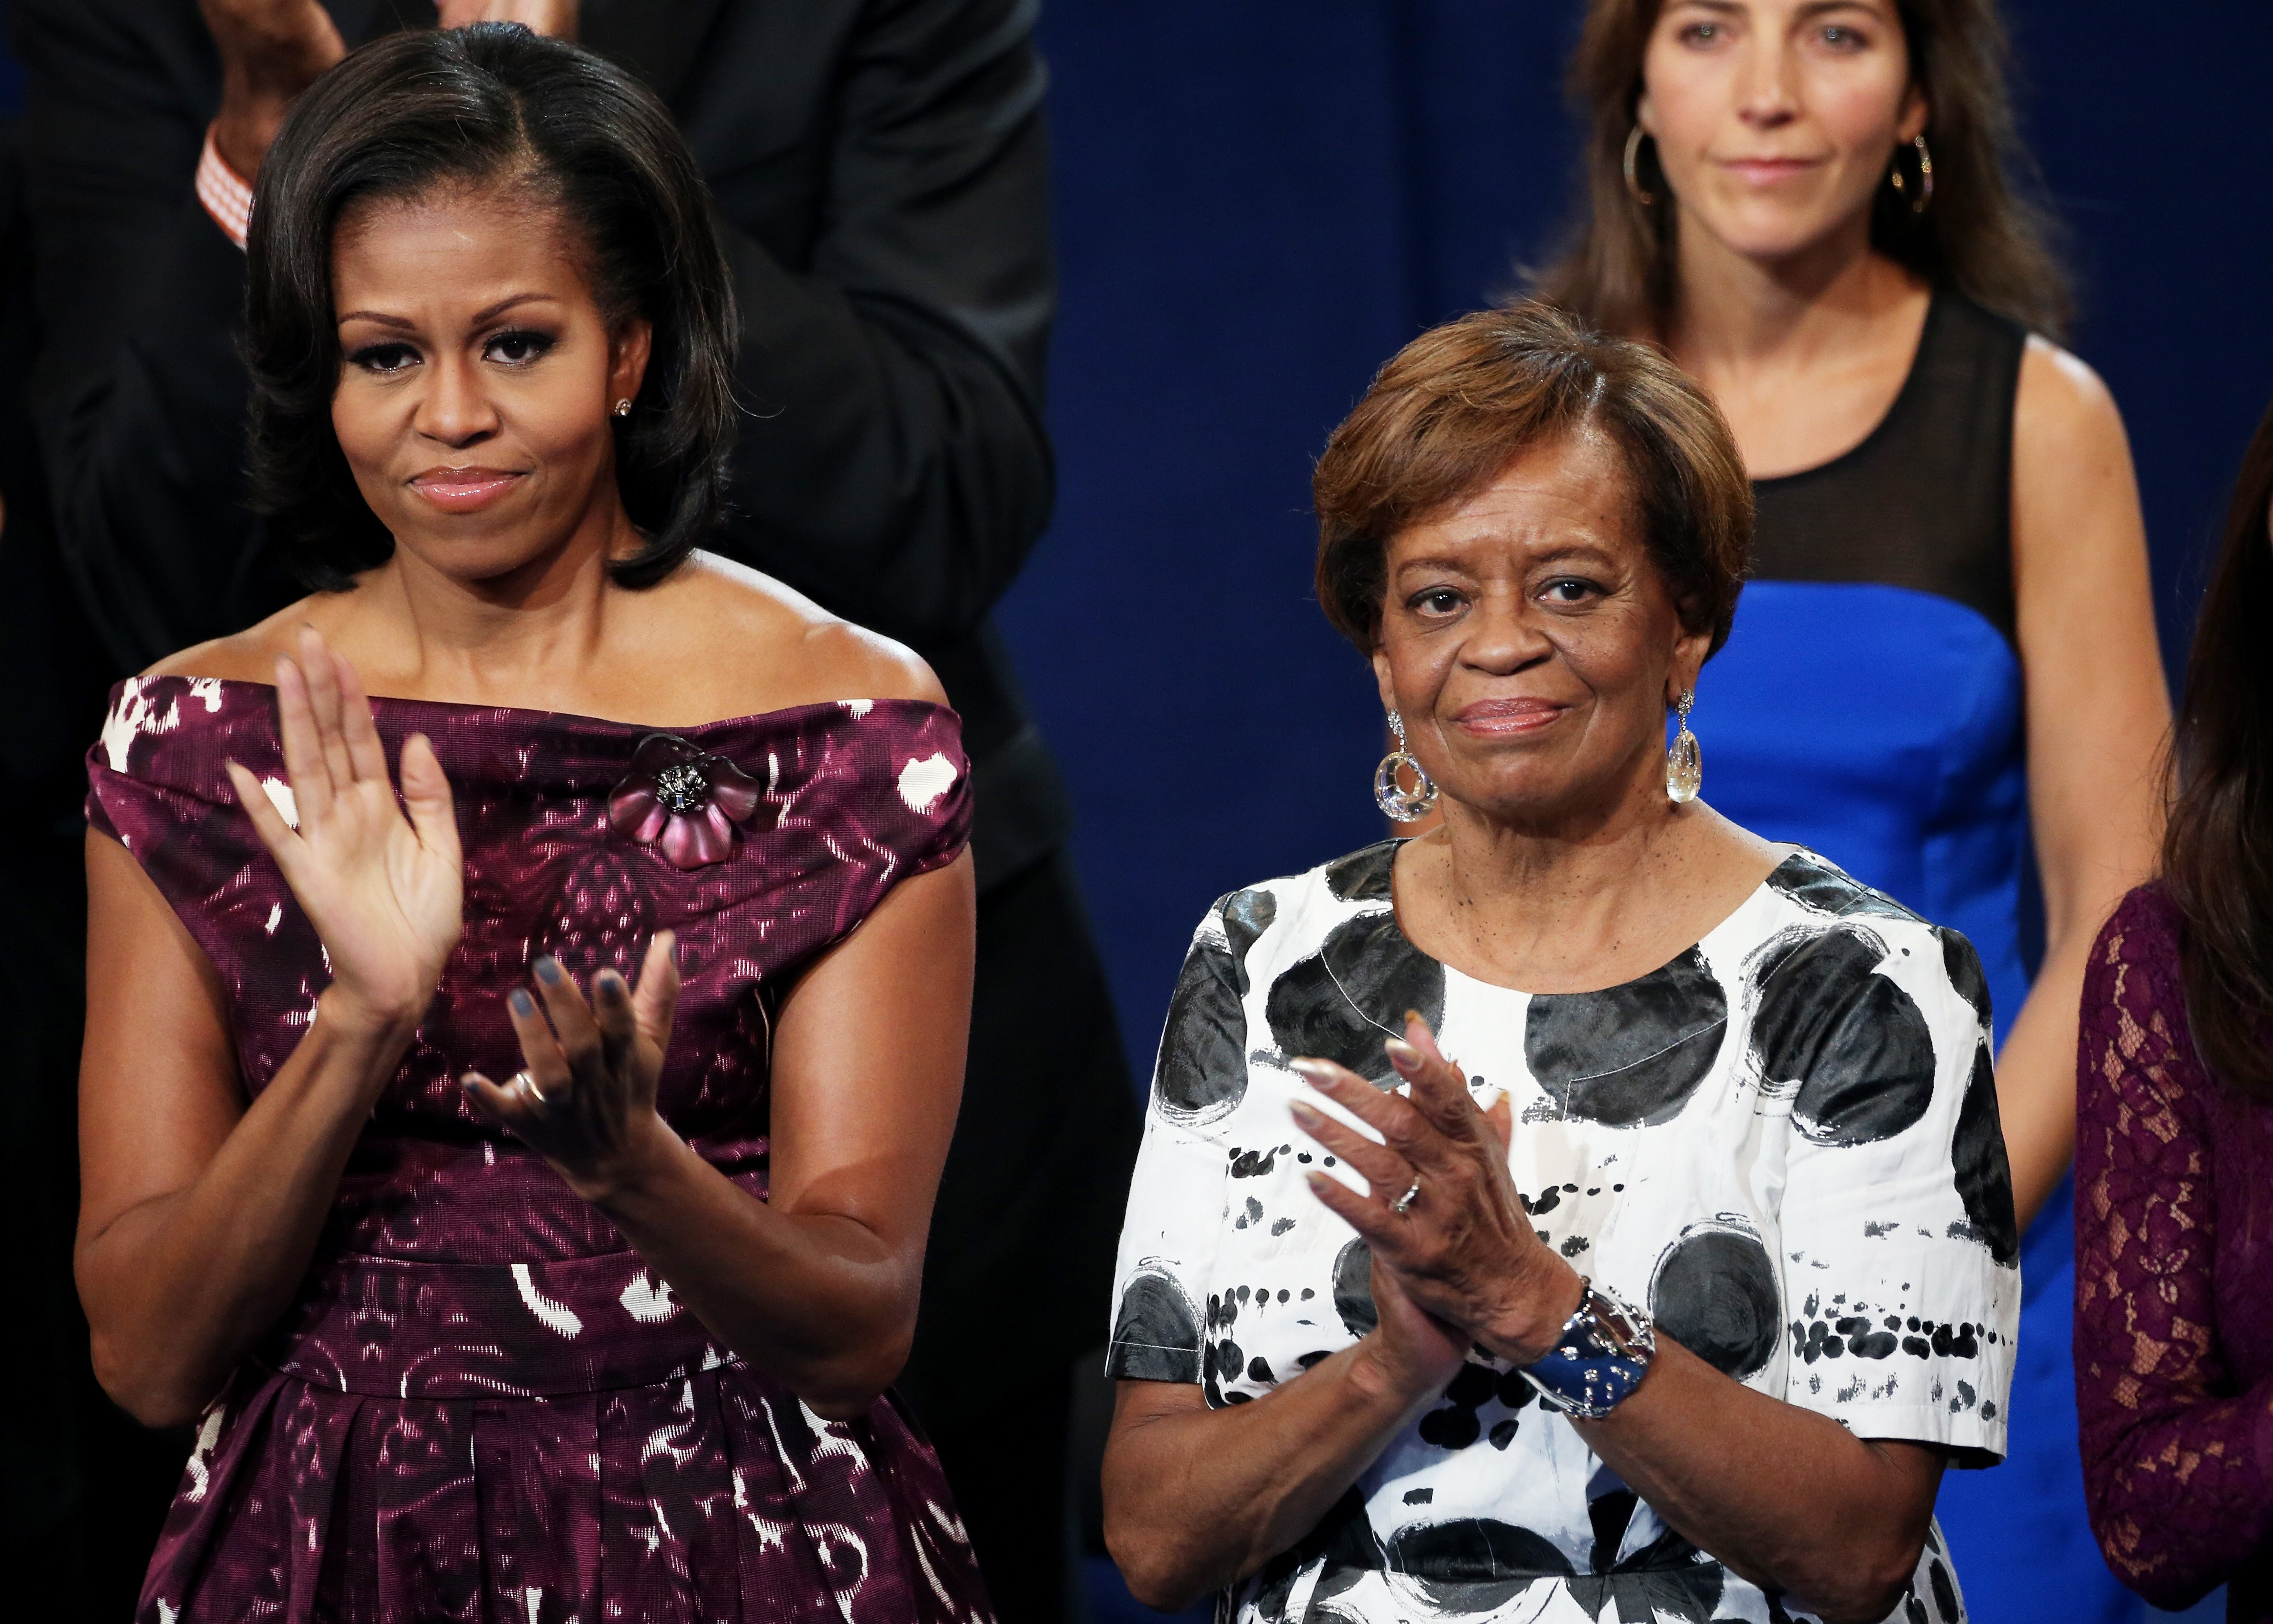 Michelle Obama and her mother Marian Robinson | Photo: Getty Images